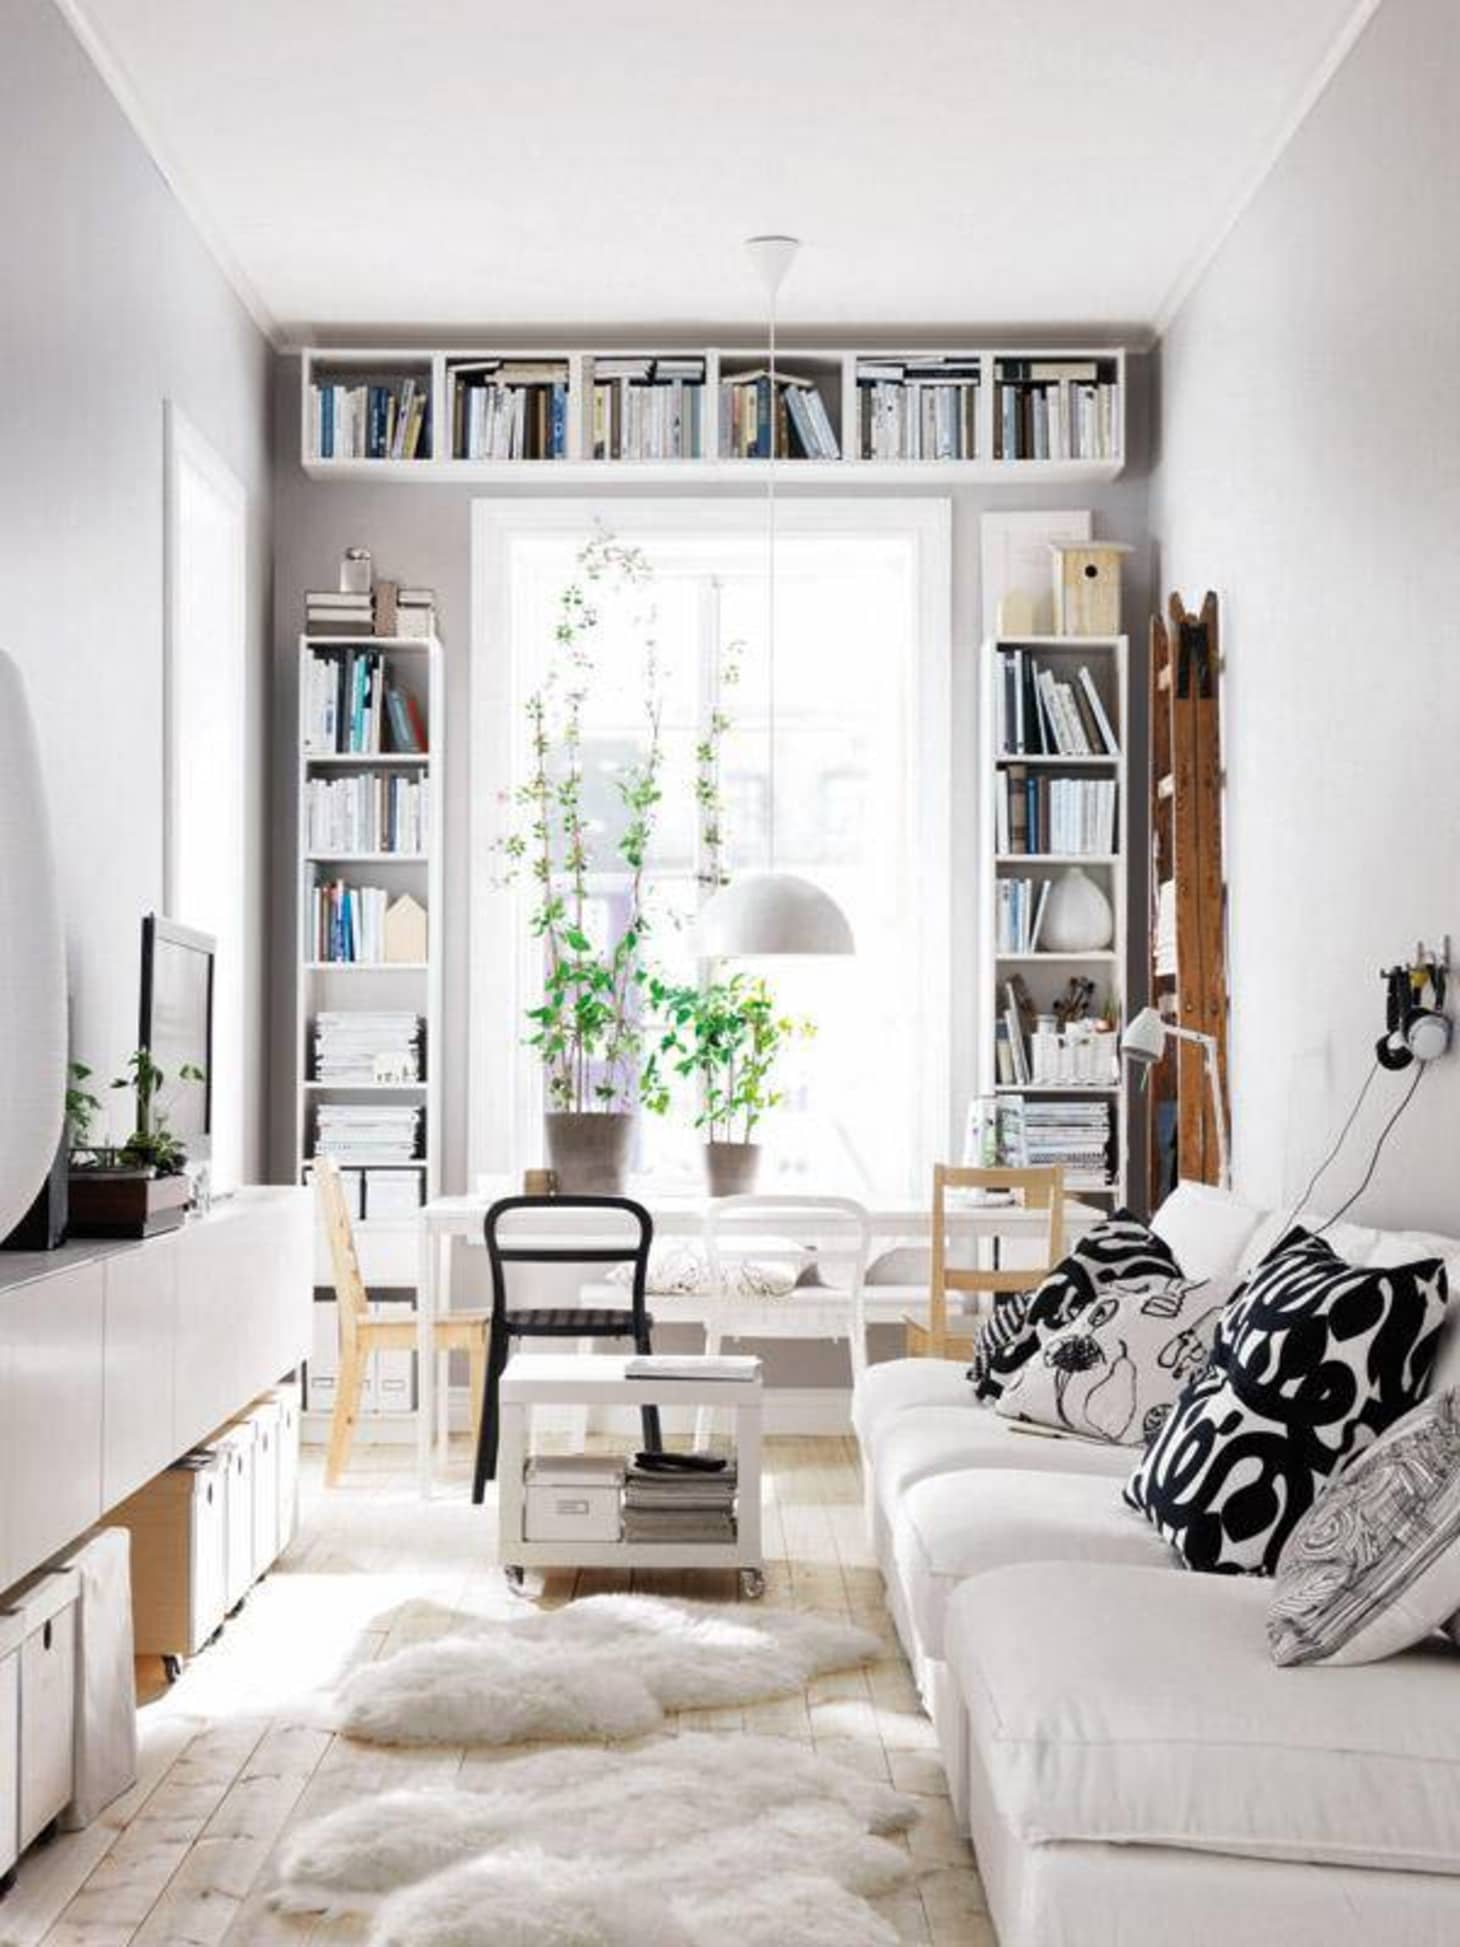 Interior Design Space: 30 Small Living Room Decorating & Design Ideas